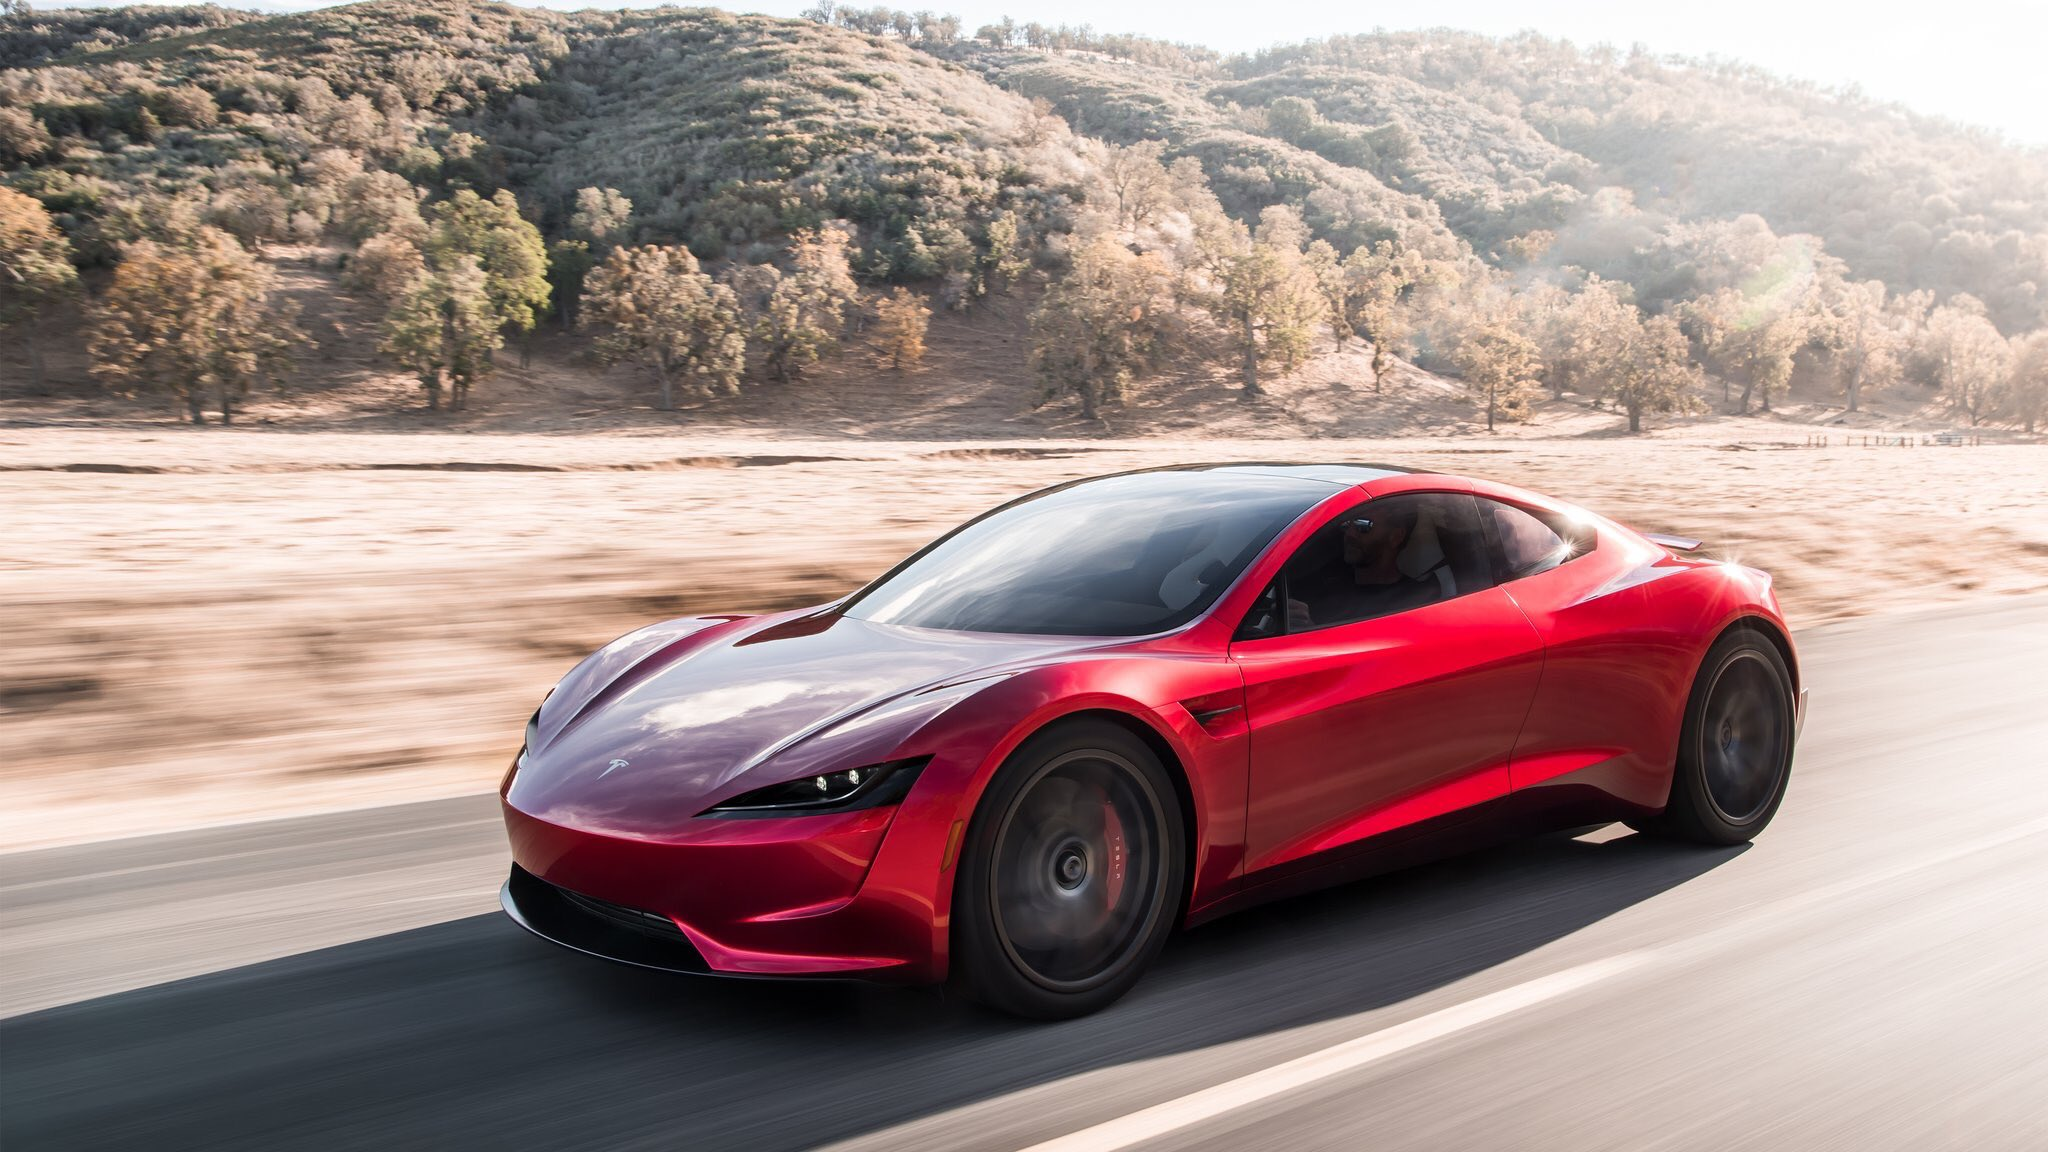 RT @BiIlionaires: TESLA IS KILLING THE GAME WITH THEIR NEW ROADSTER https://t.co/LNYxBsQ7bR